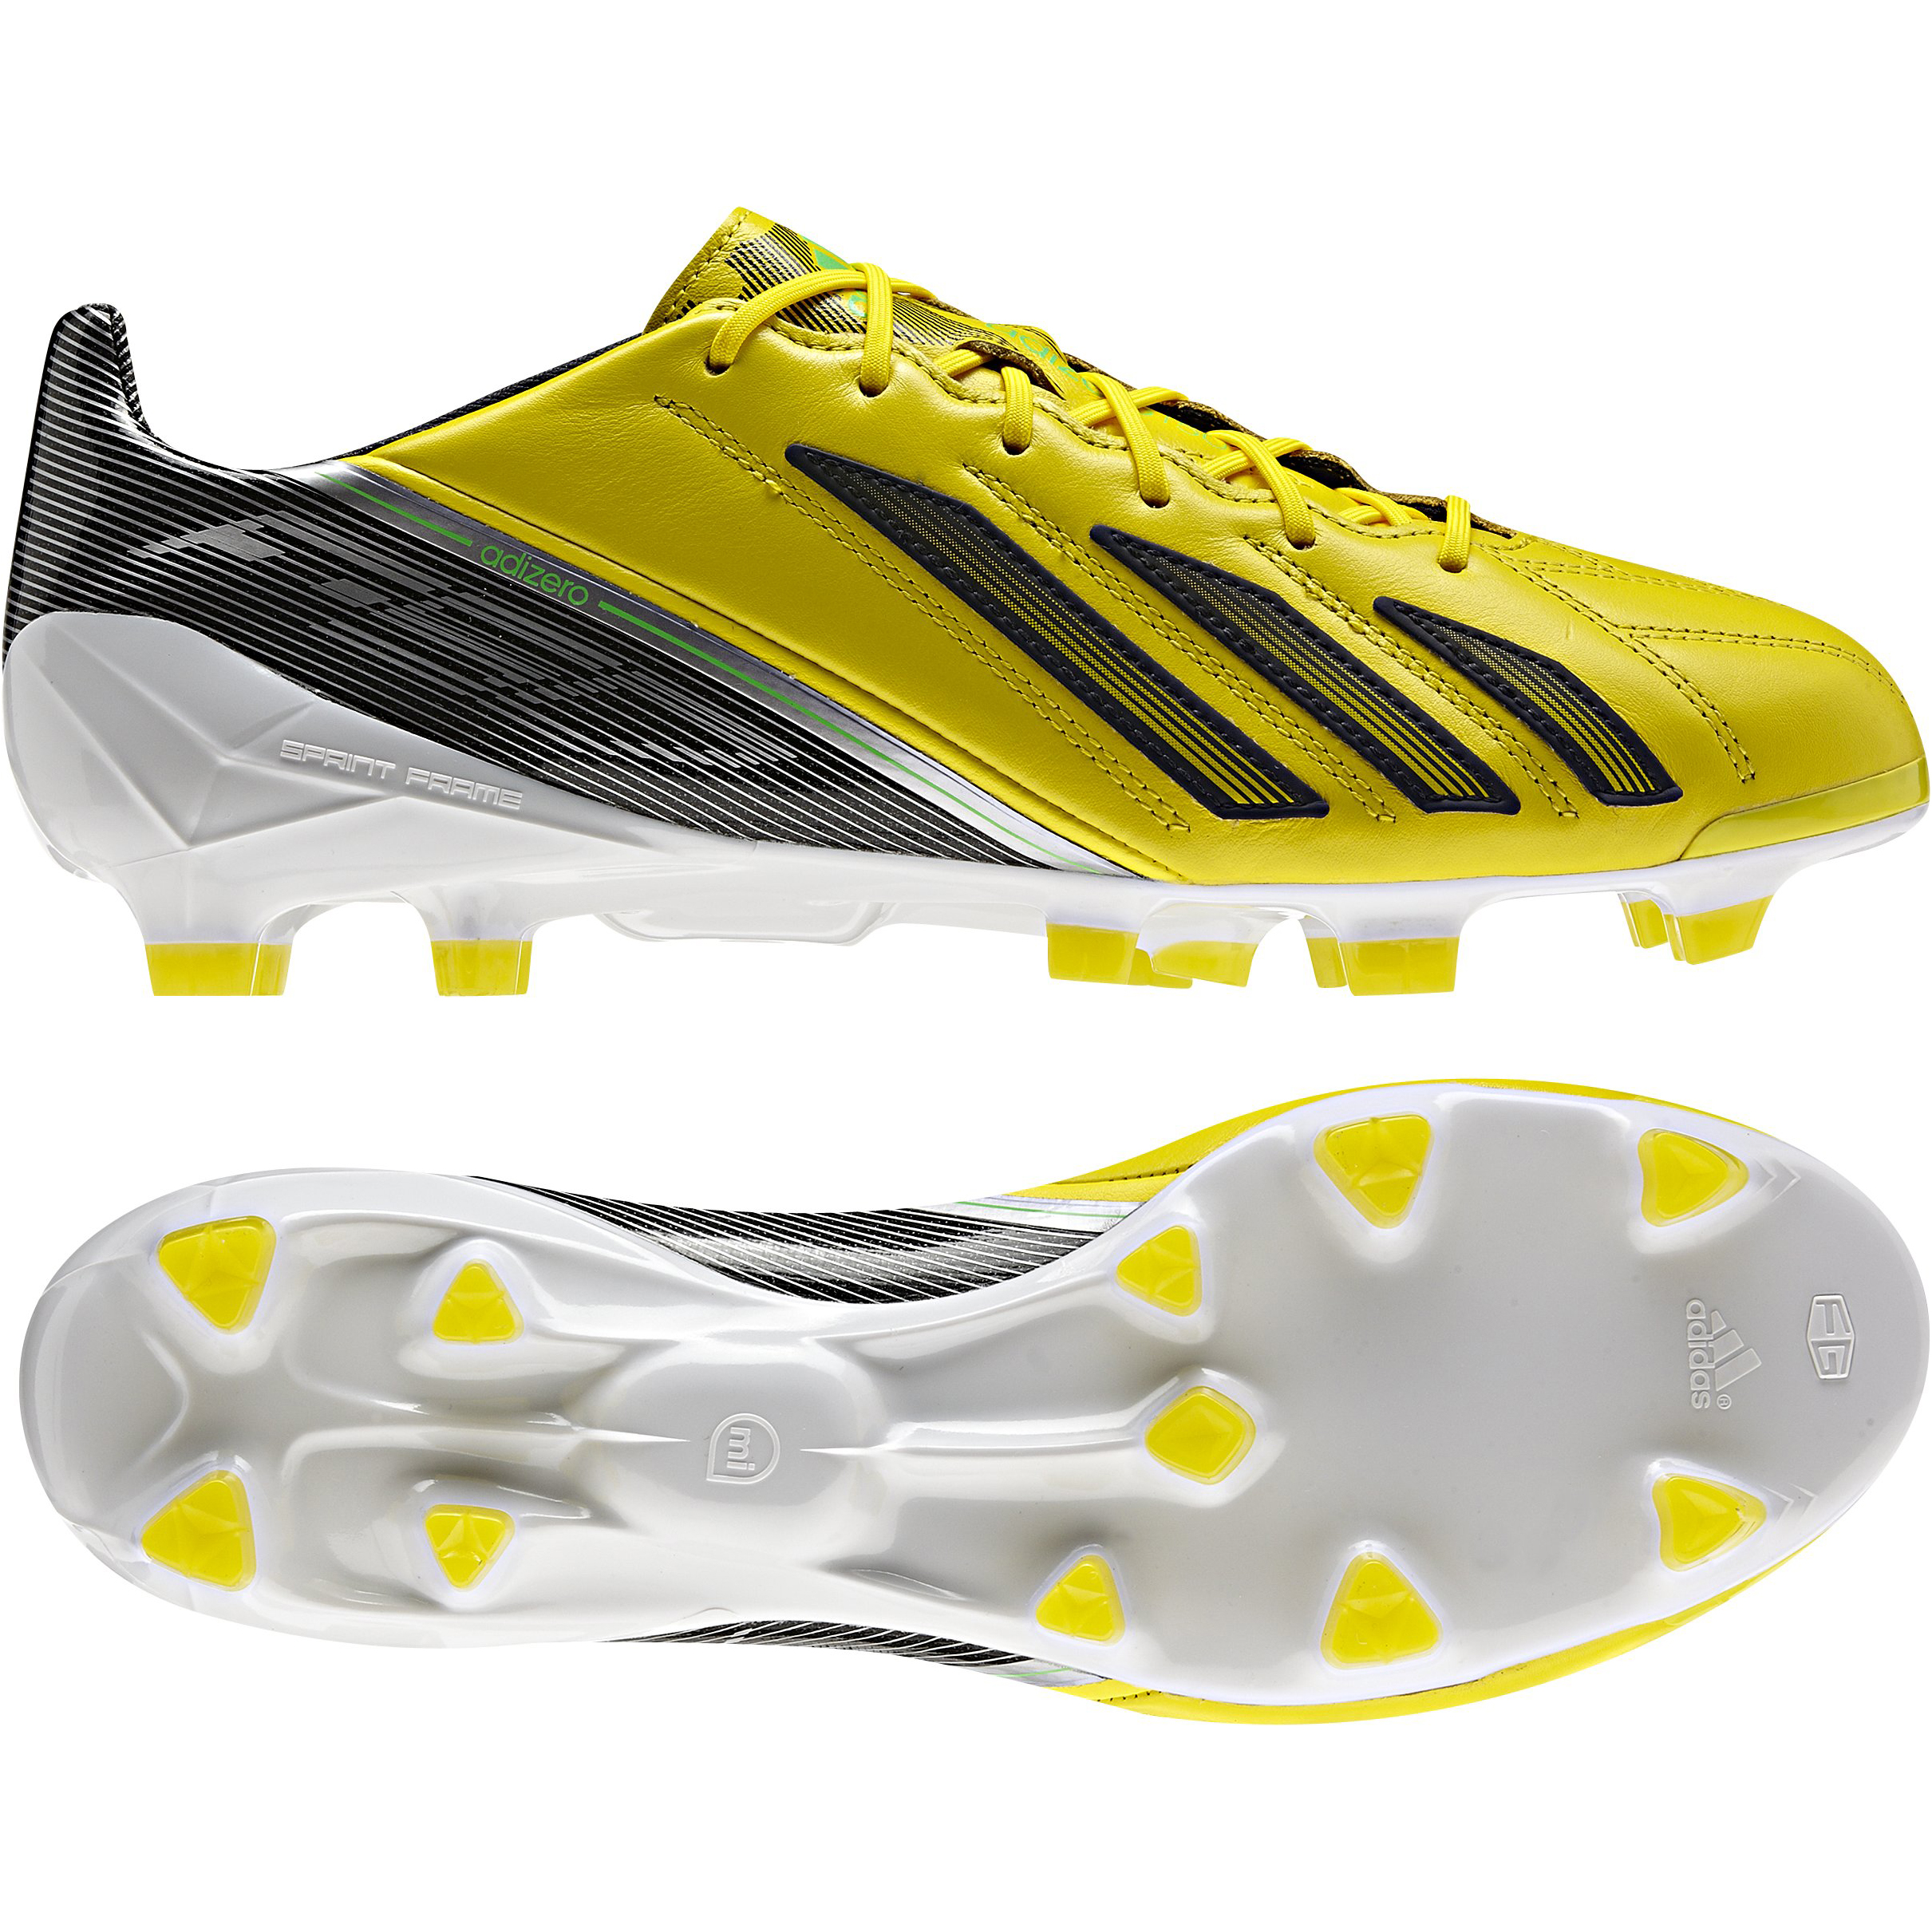 AdiZero F50 TRX FG Leather Vivid Yellow/Black/Green Zest